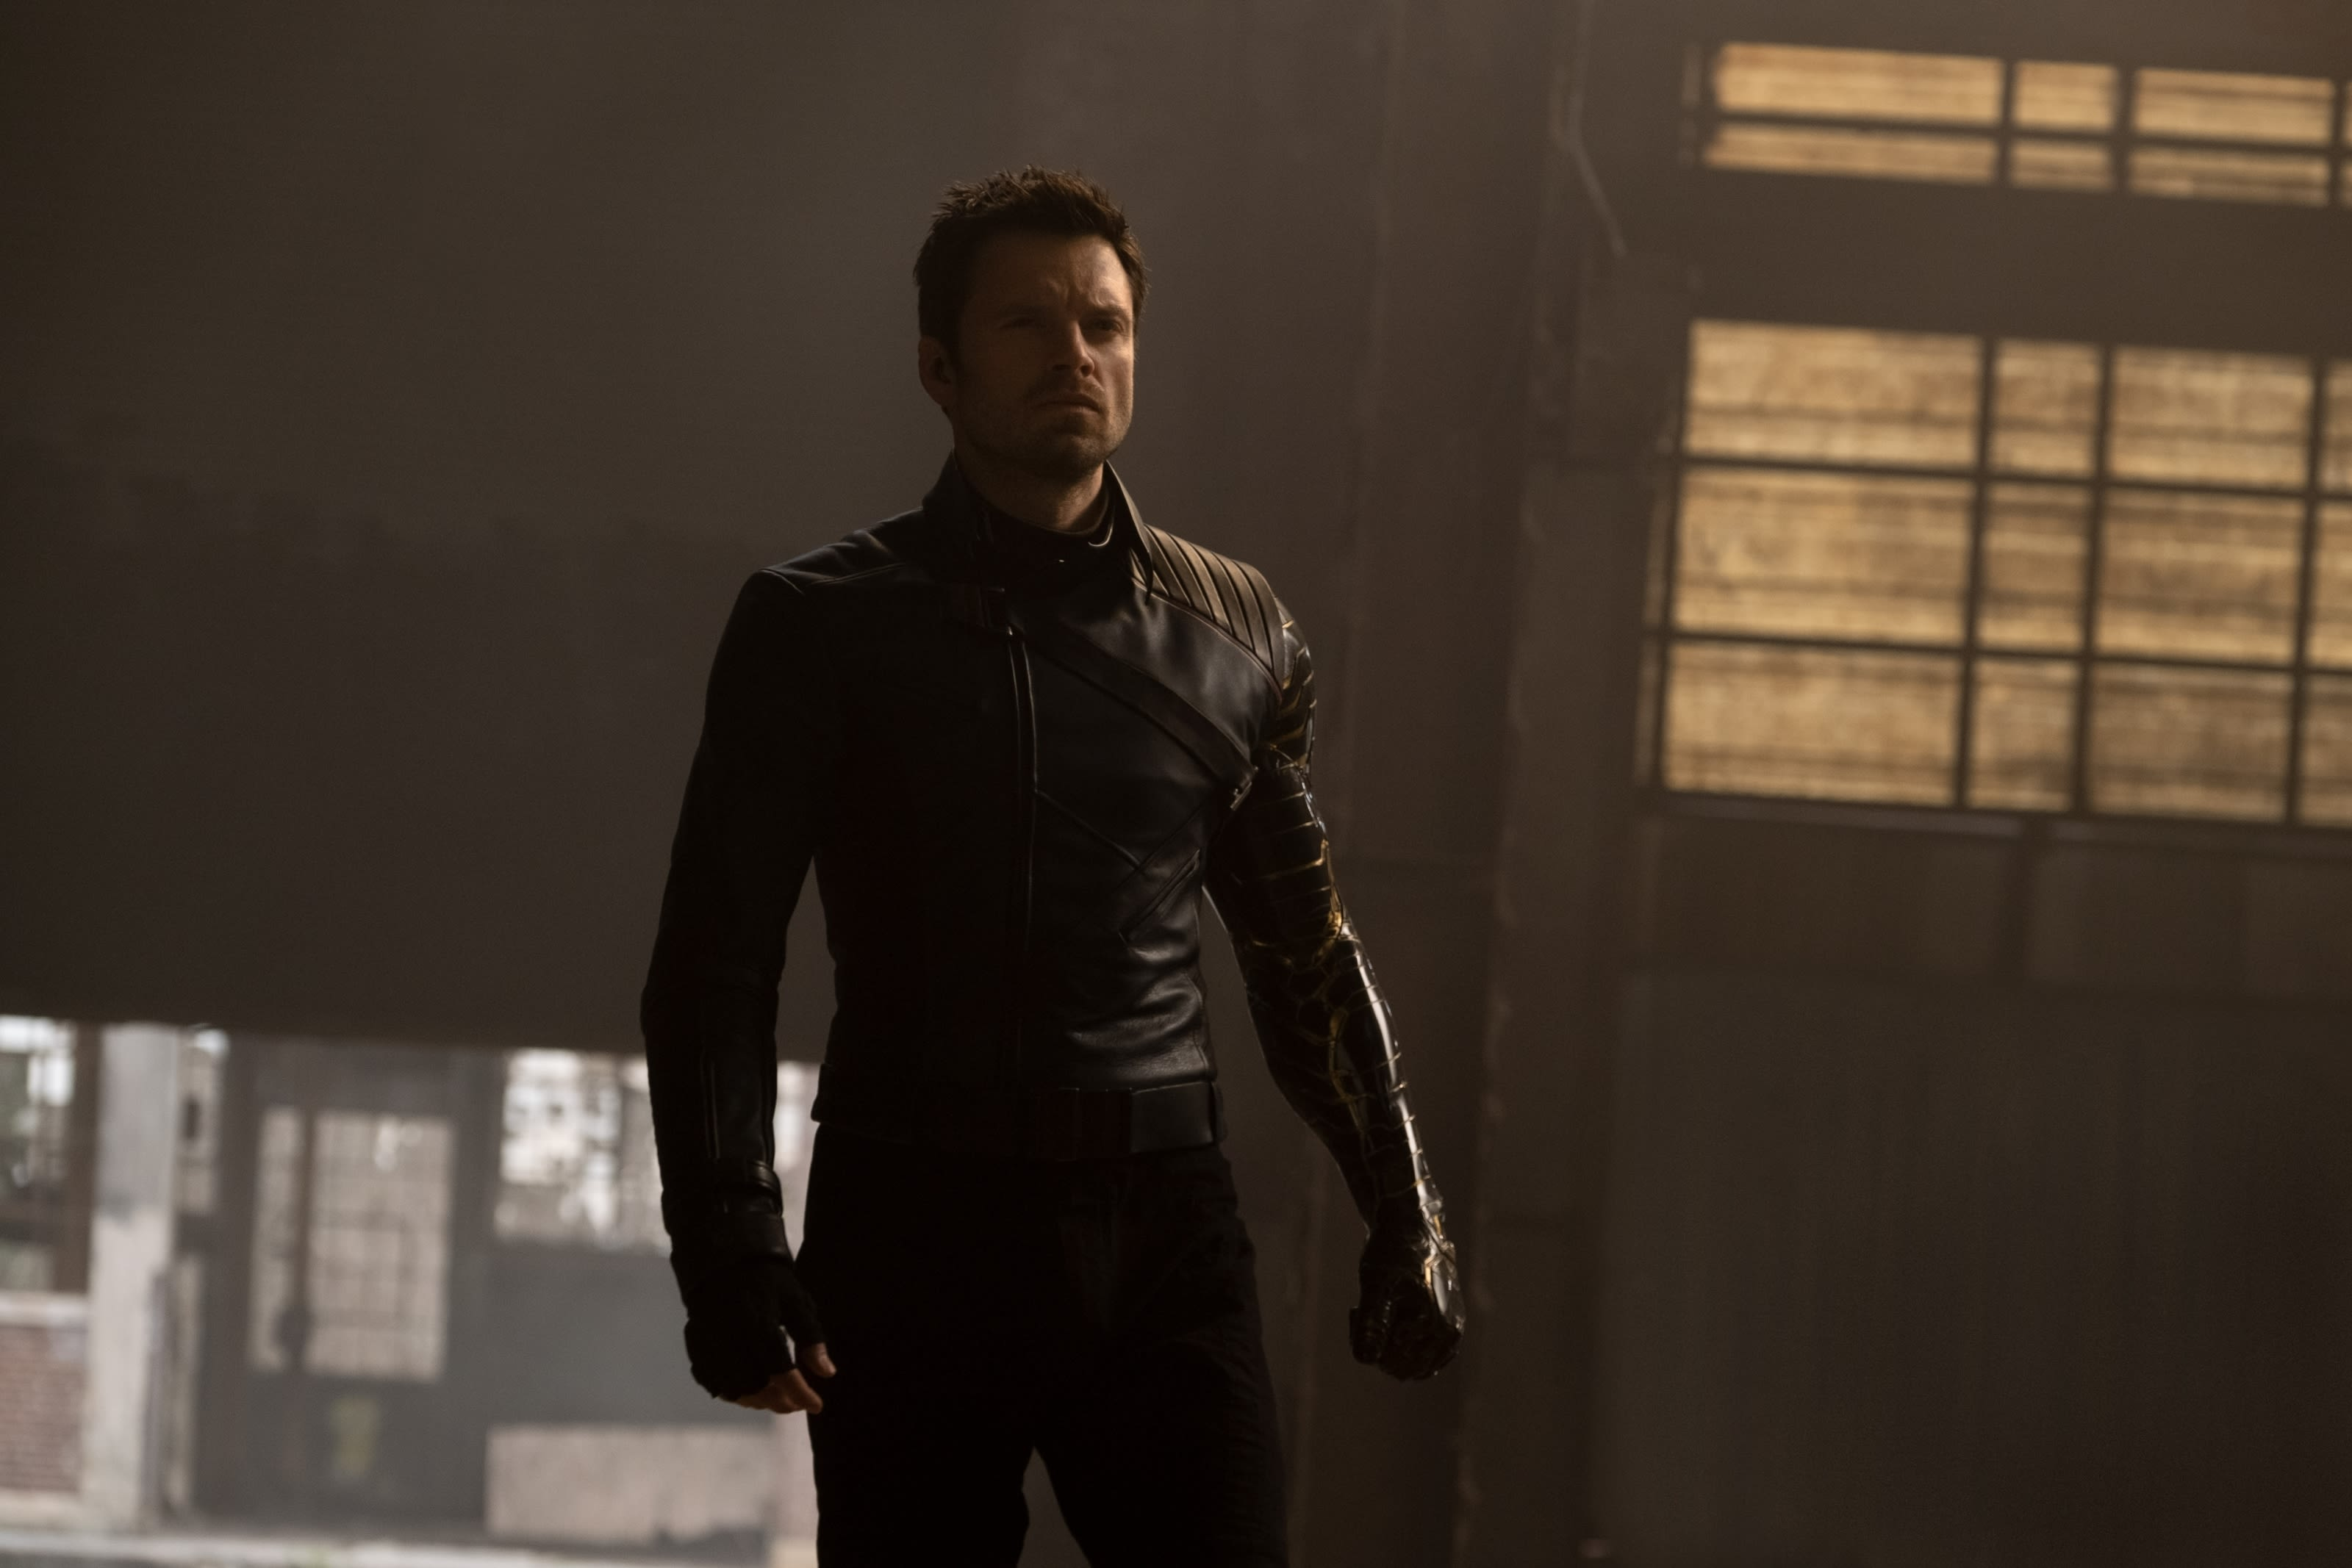 The Falcon and the Winter Soldier, The Falcon and the Winter Soldier season 1, The Falcon and the Winter Soldier season 1 episode 3, The Falcon and The Winter Soldier episode 4, Marvel Cinematic Universe, MCU